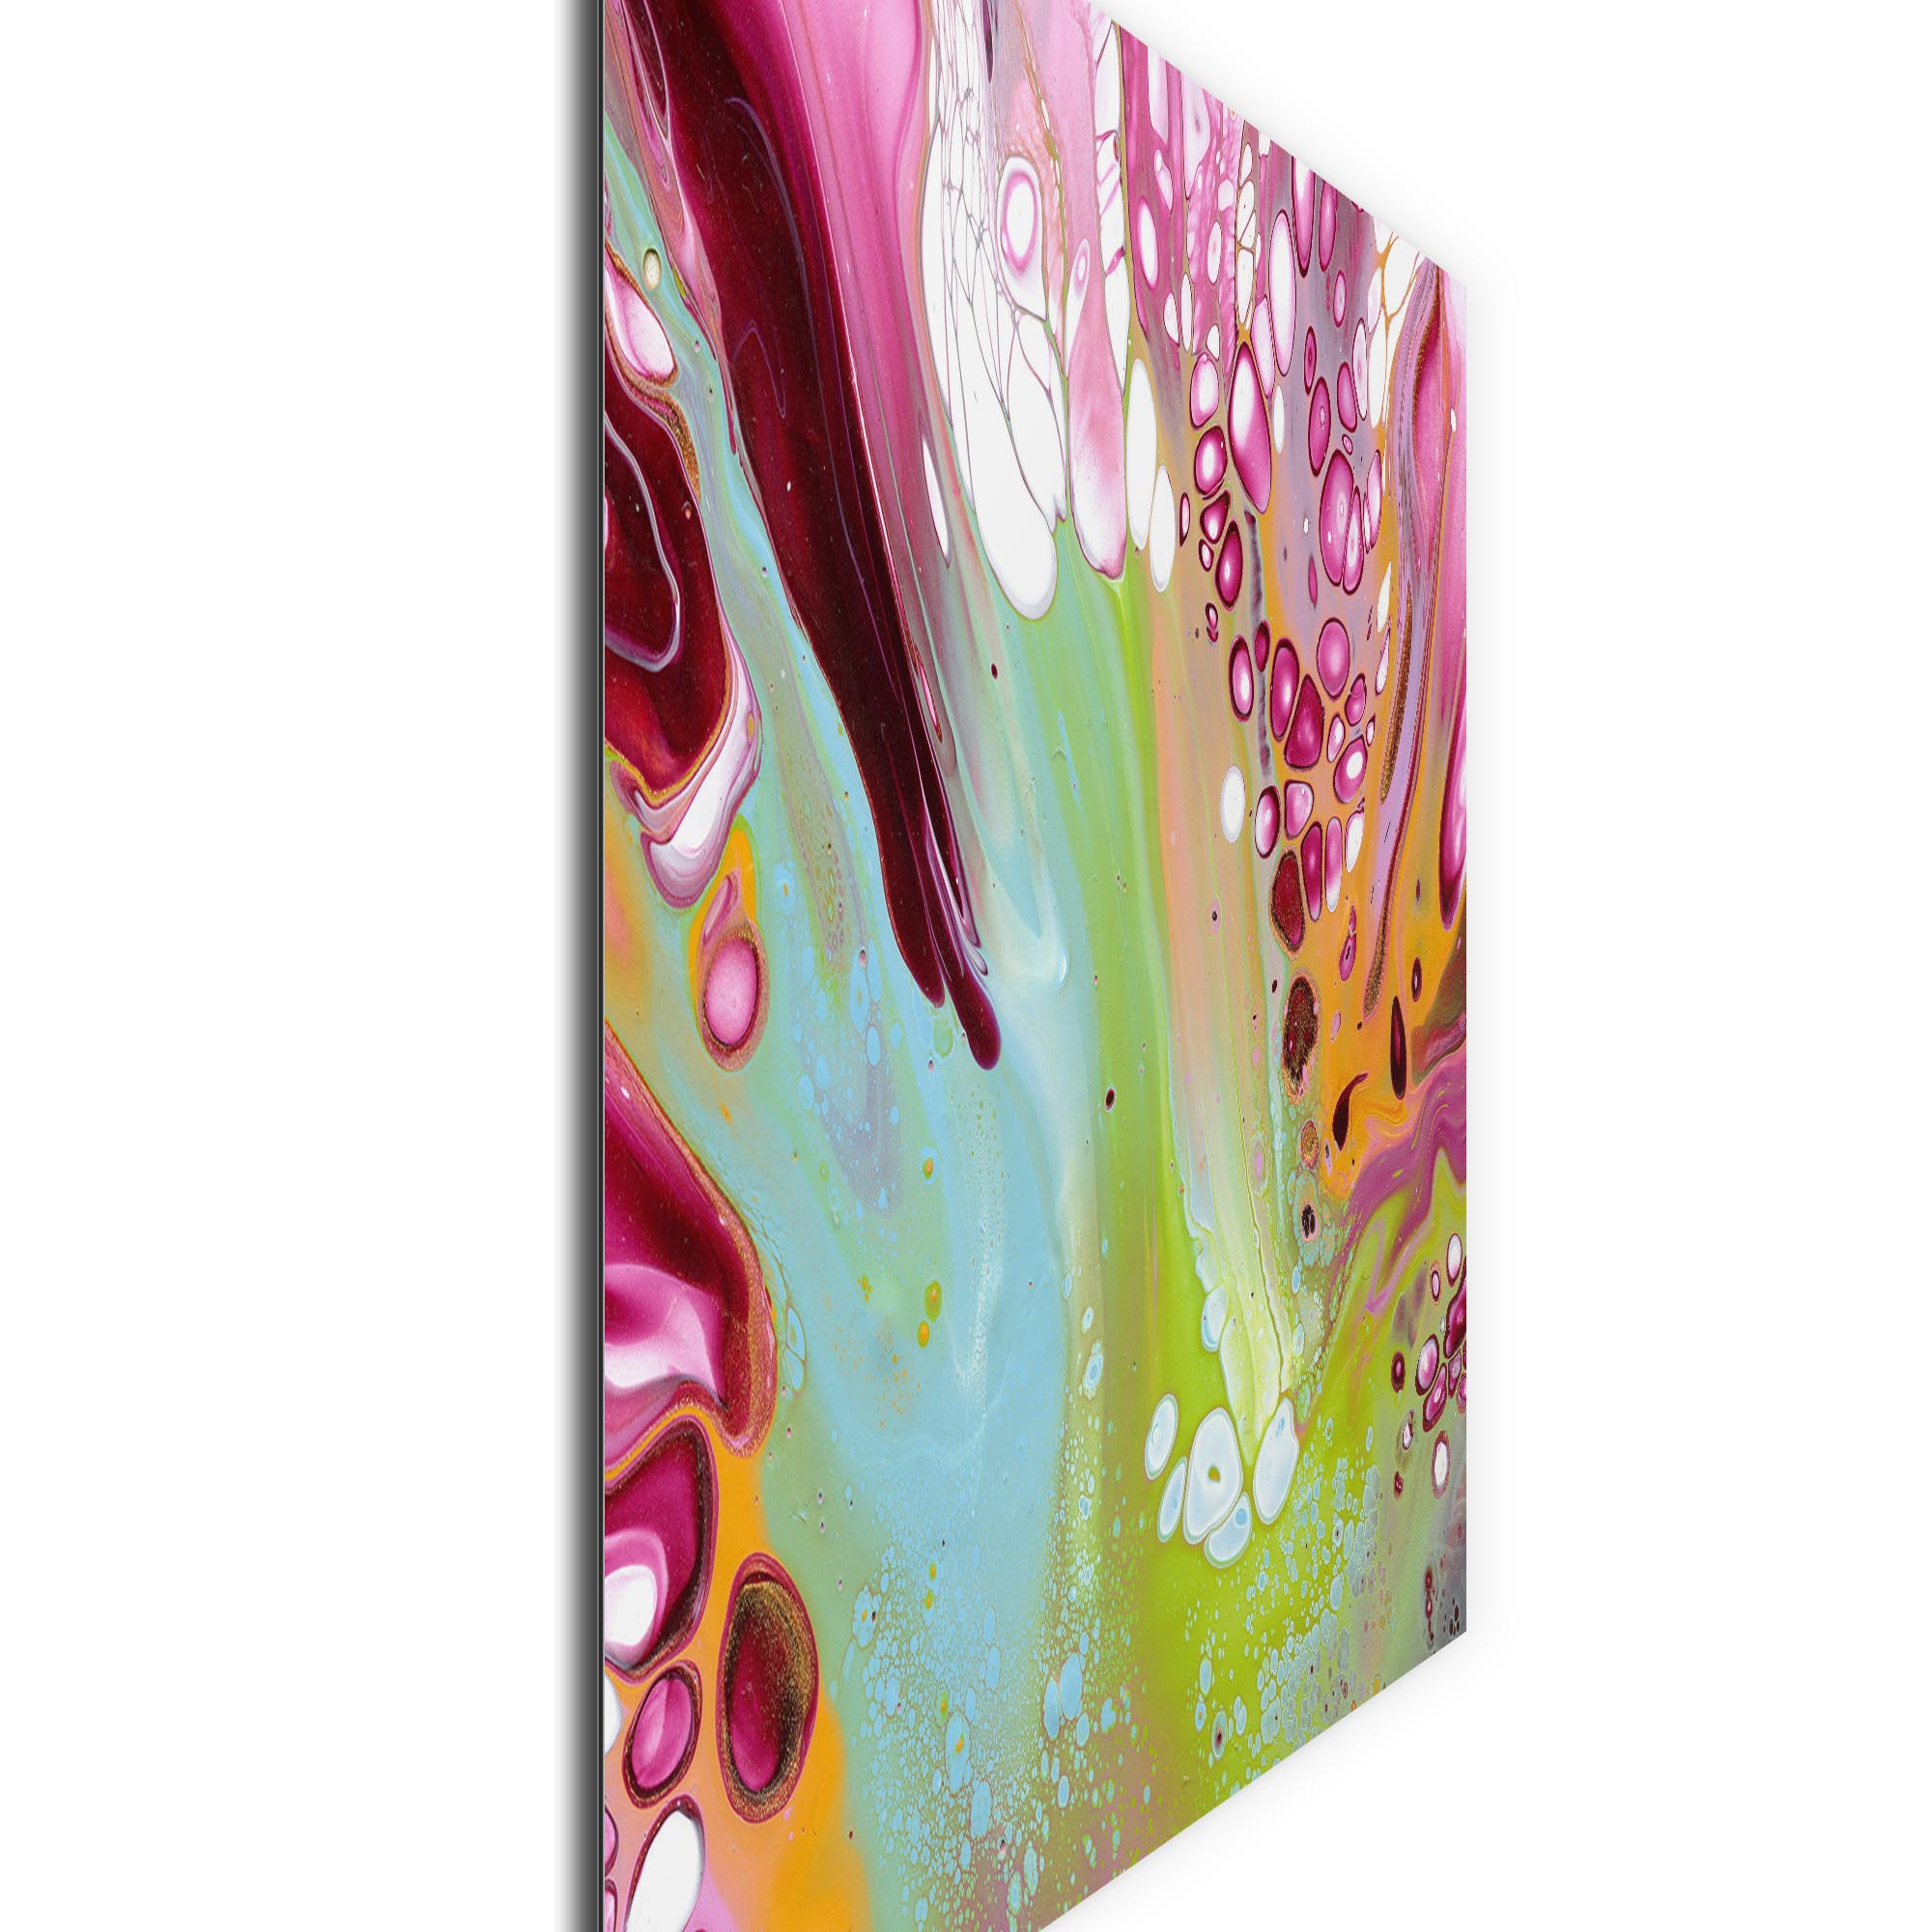 Retro by Elana Reiter - Abstract Wall Art, Modern Home Decor (32in x 24in) - Image 2